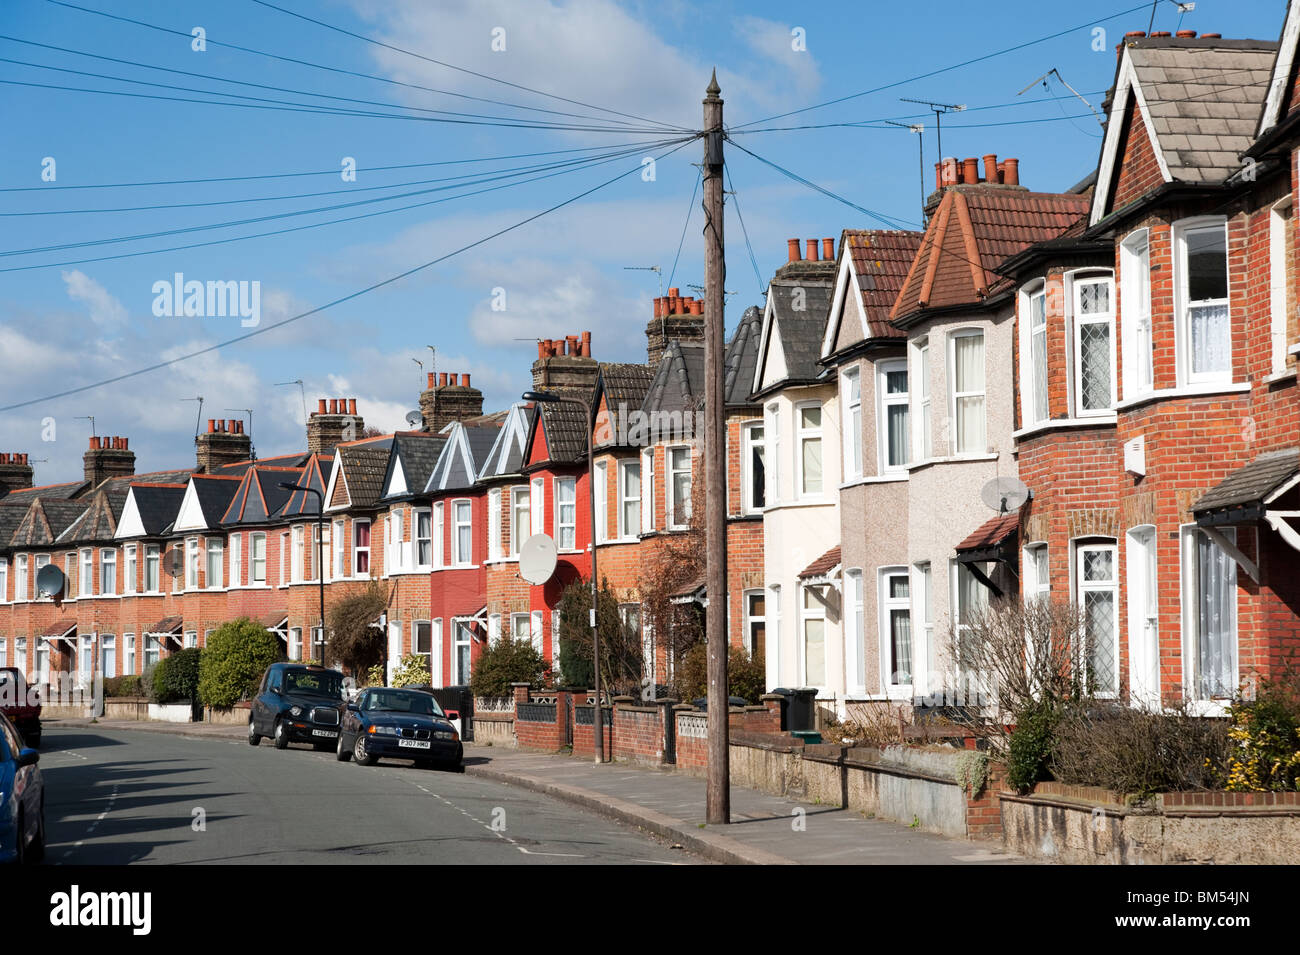 Row of terraced houses in residential Street, London, England, UK Stock Photo